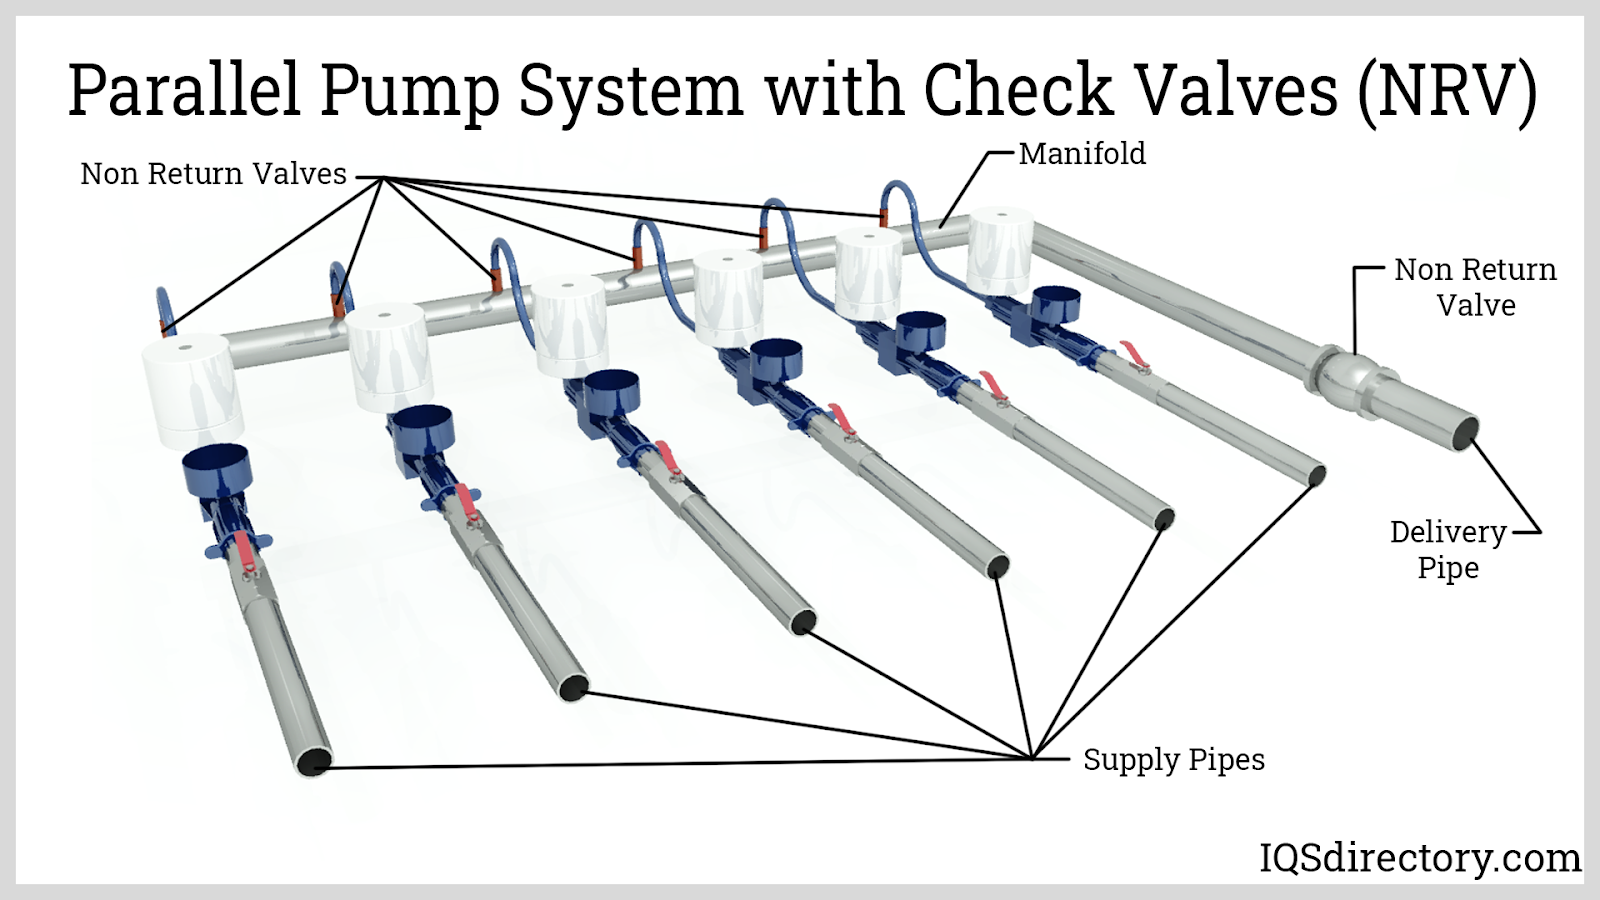 Parallel Pump System with Check Valves (NRV)